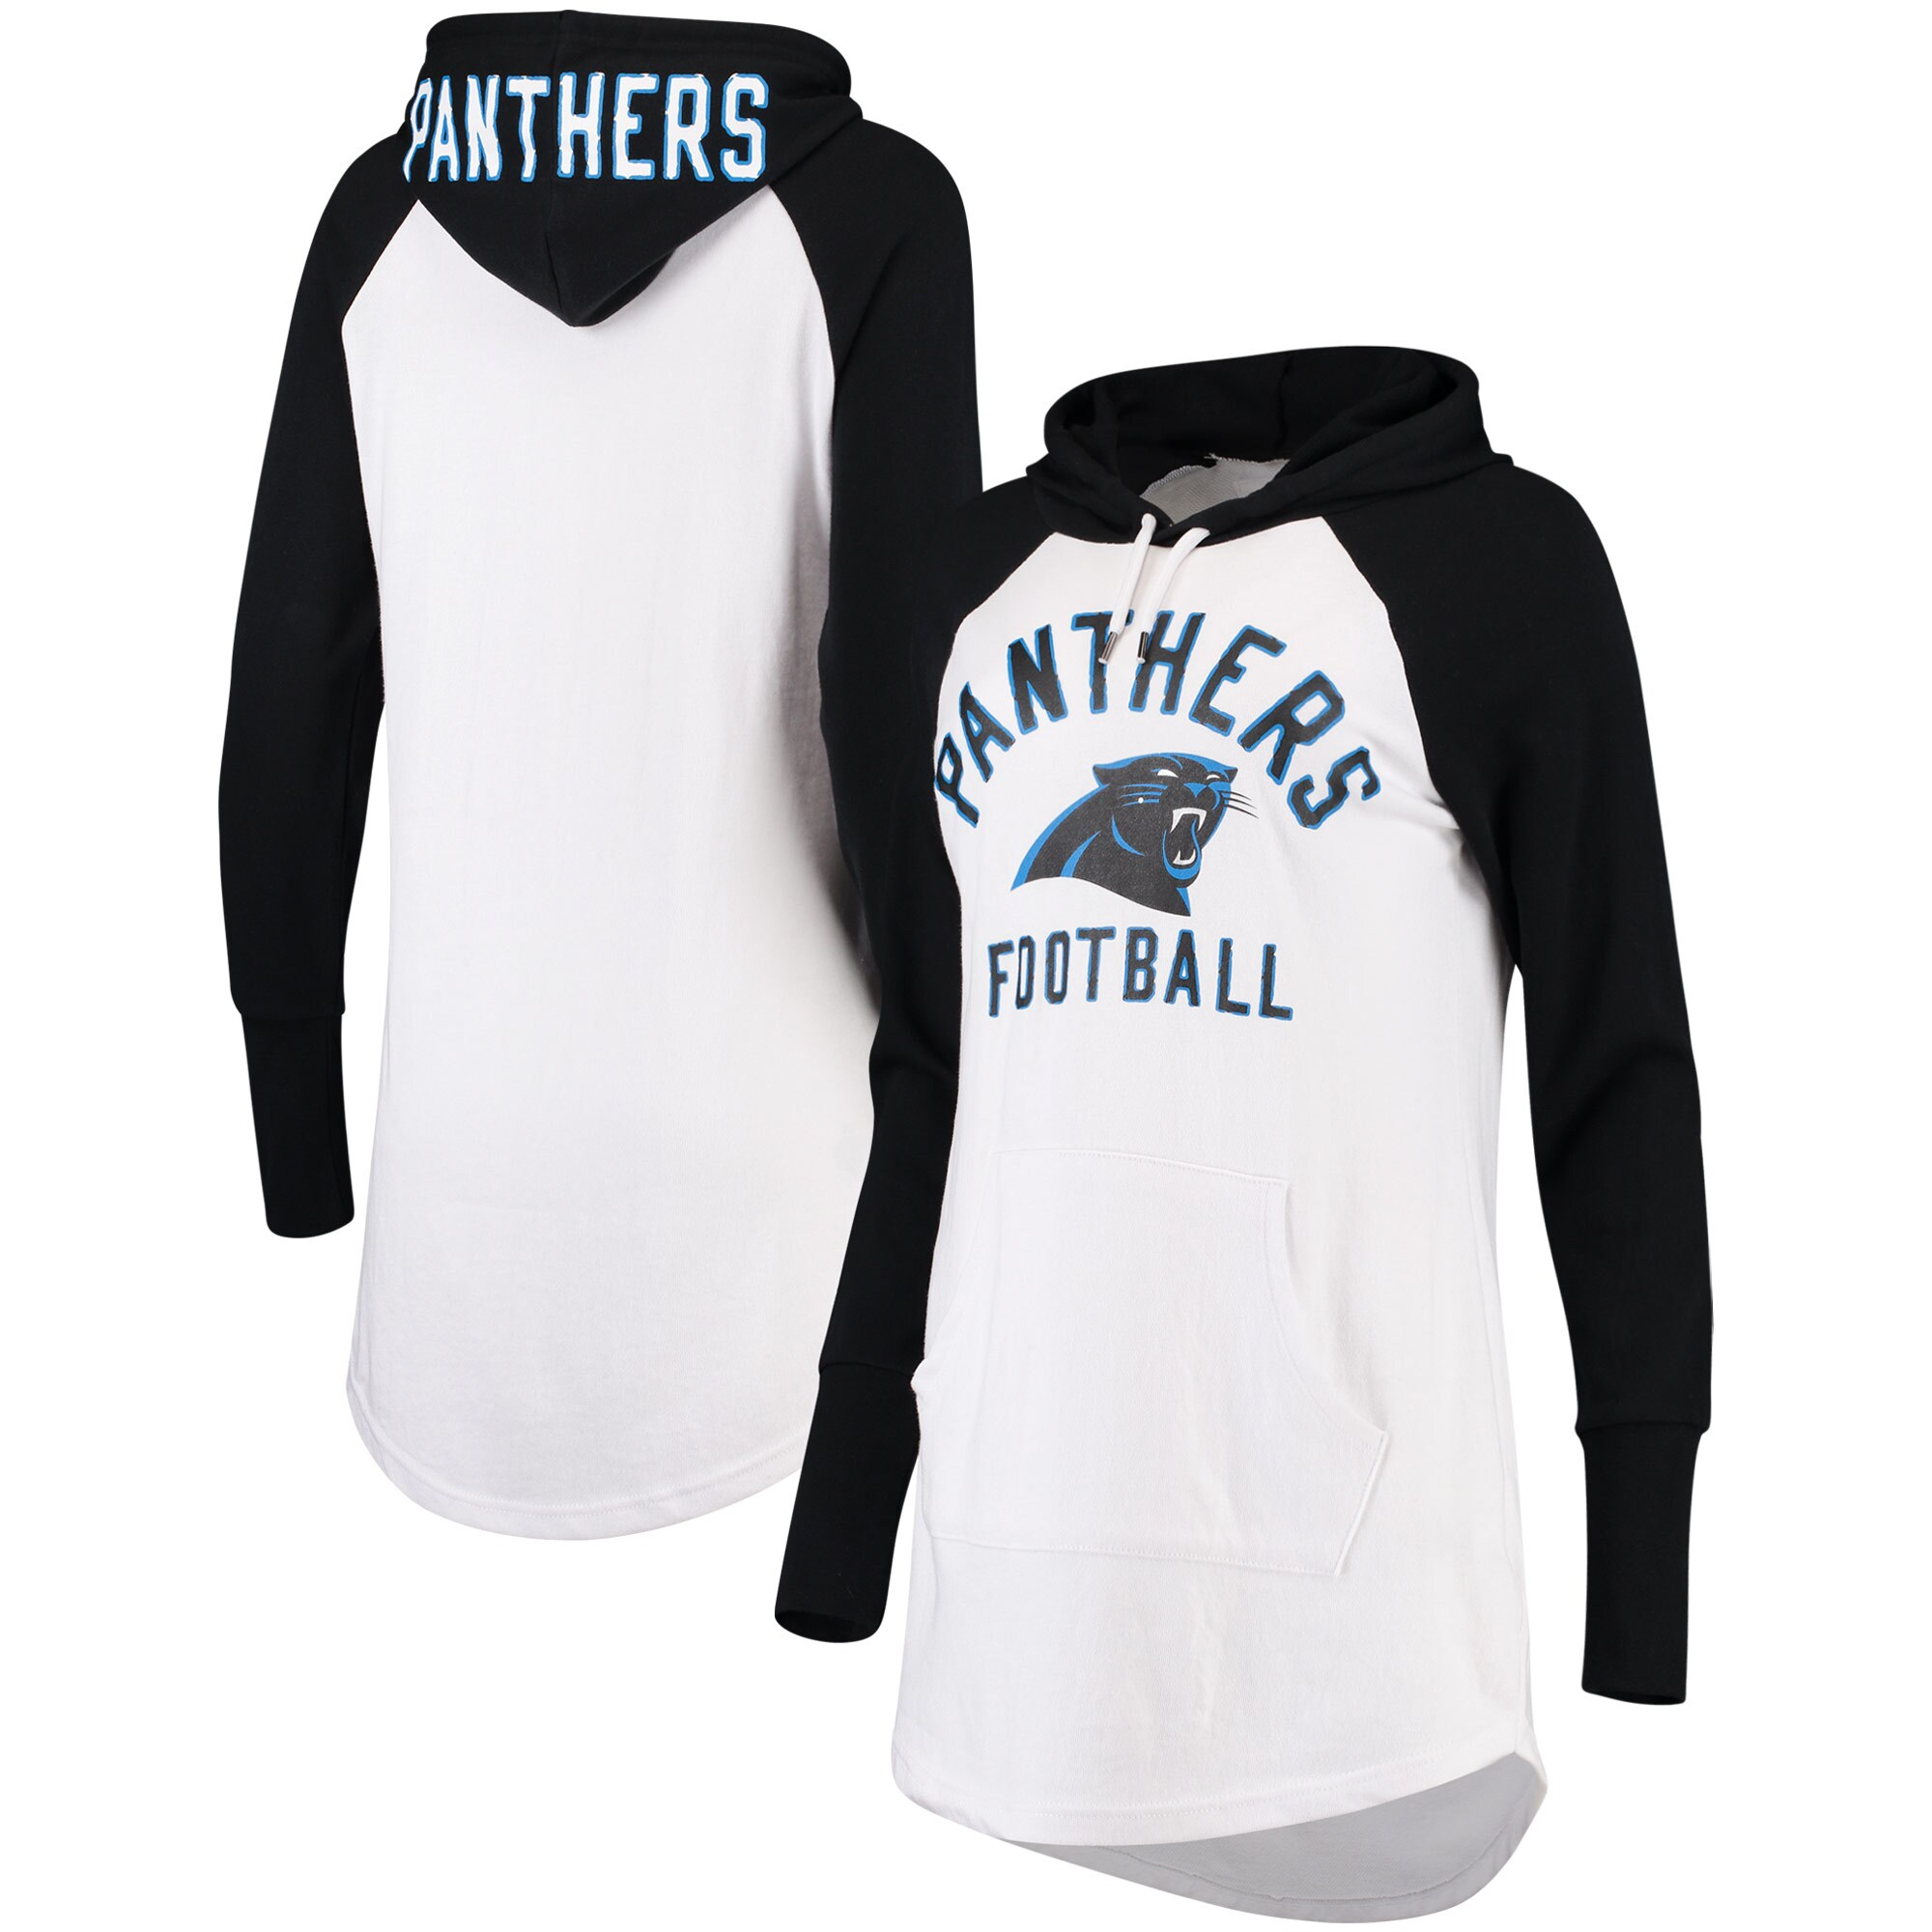 Carolina Panthers G-III 4Her by Carl Banks Women's All Division Raglan Sleeve Pullover Hoodie - White/Black